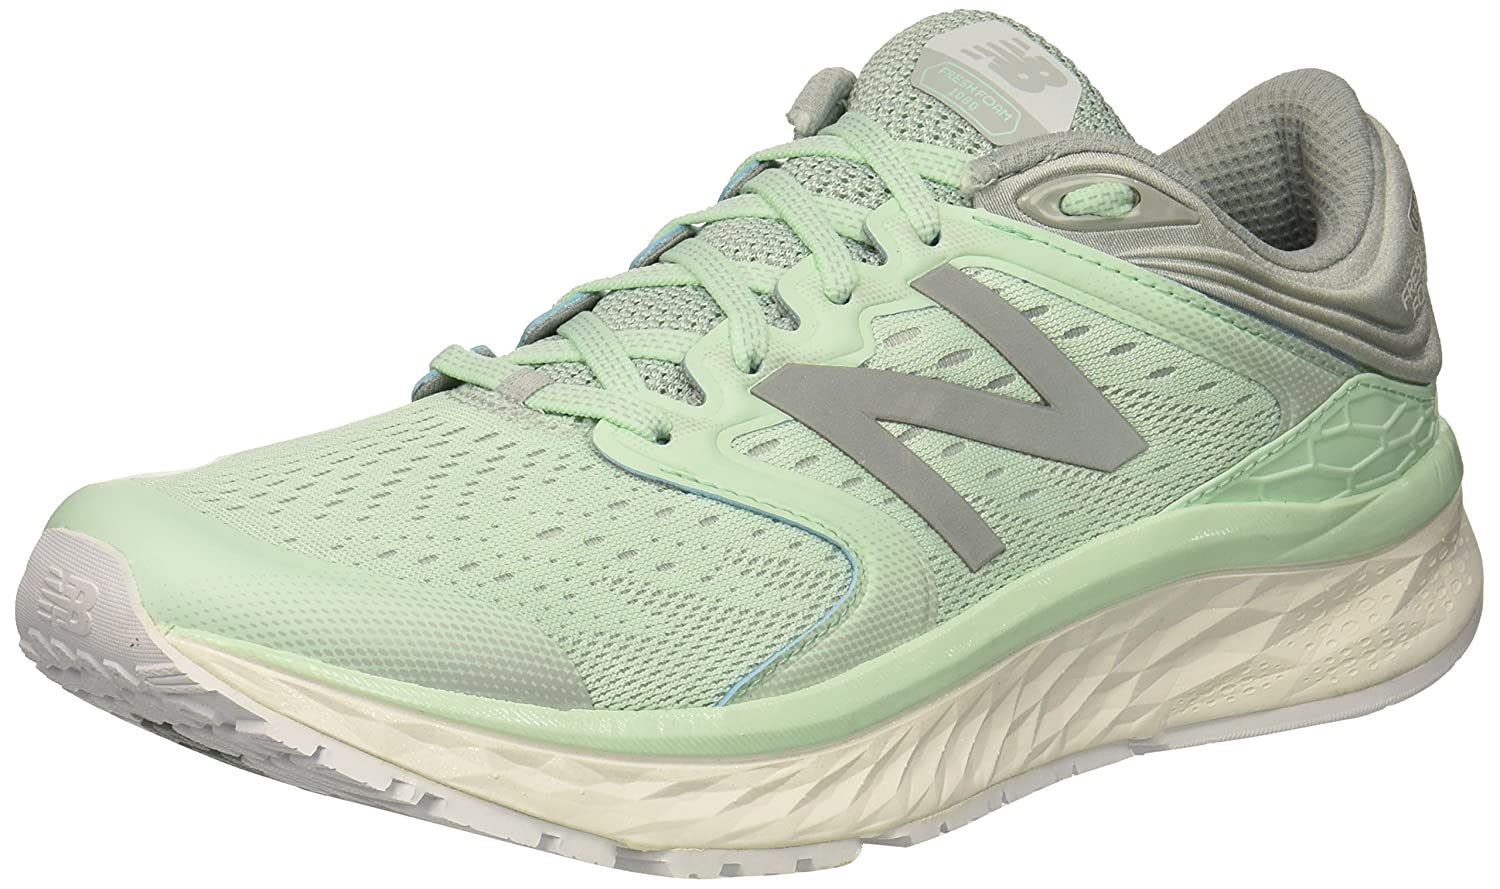 人気商品 New Balance 5 Women's W1080 Ankle-High Running Running Shoe Shoe B077PVT7LZ ライトブルー 5 2E US 5 2E US|ライトブルー, 東村:c2f3c9b9 --- go-mo.uk